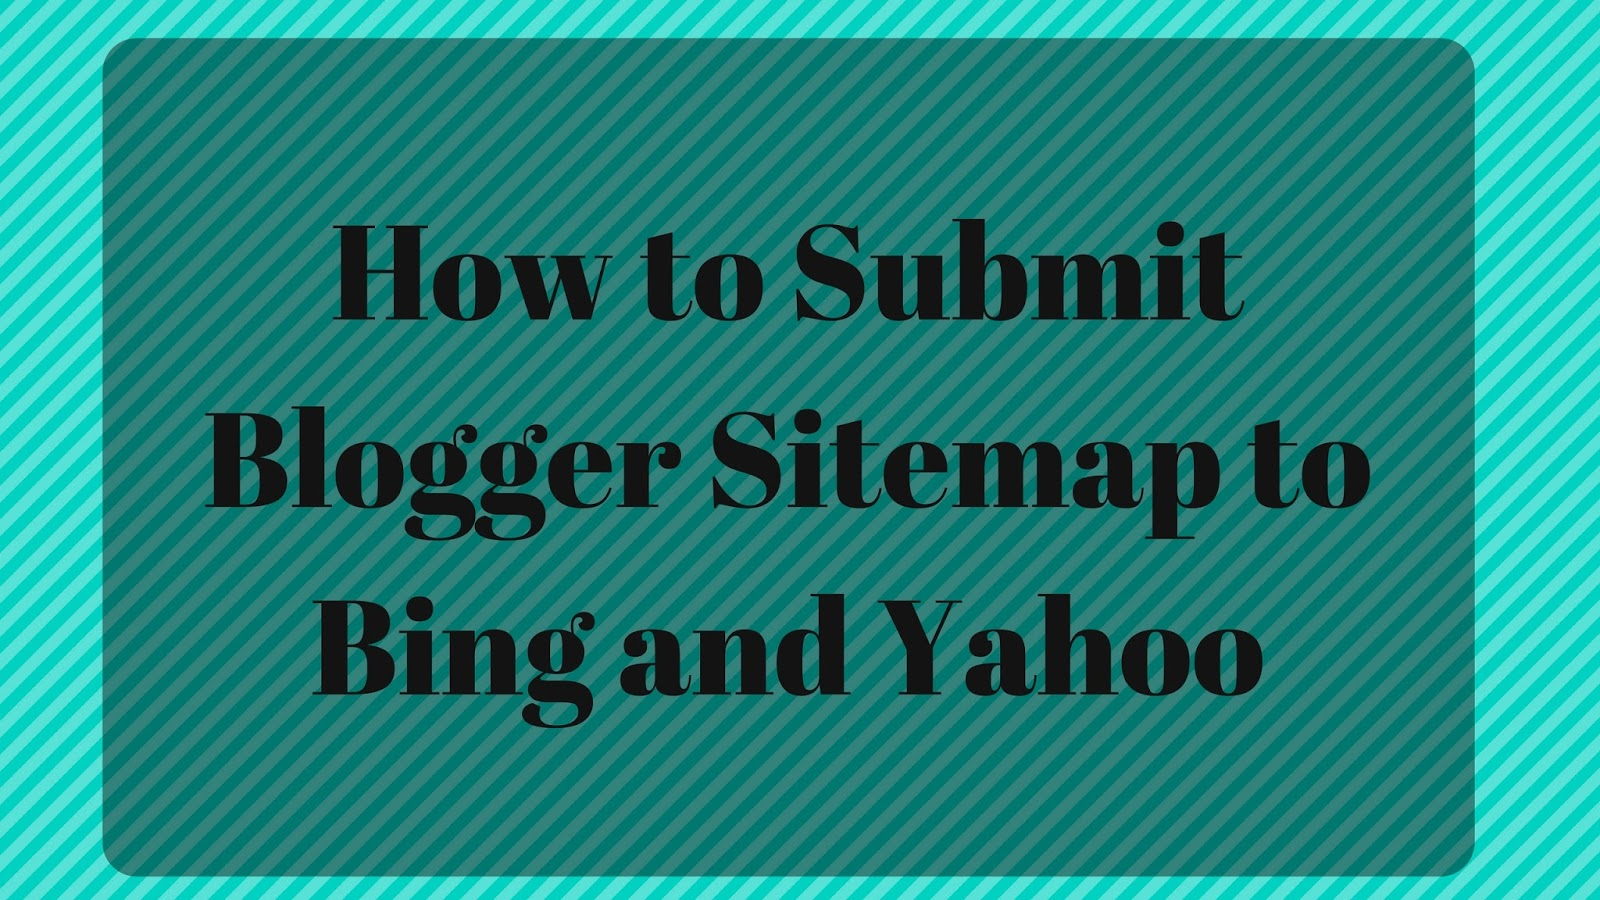 how to submit site map to bing and yahoo, submit a sitemap to bing webmaster tools, add a site map to yahoo